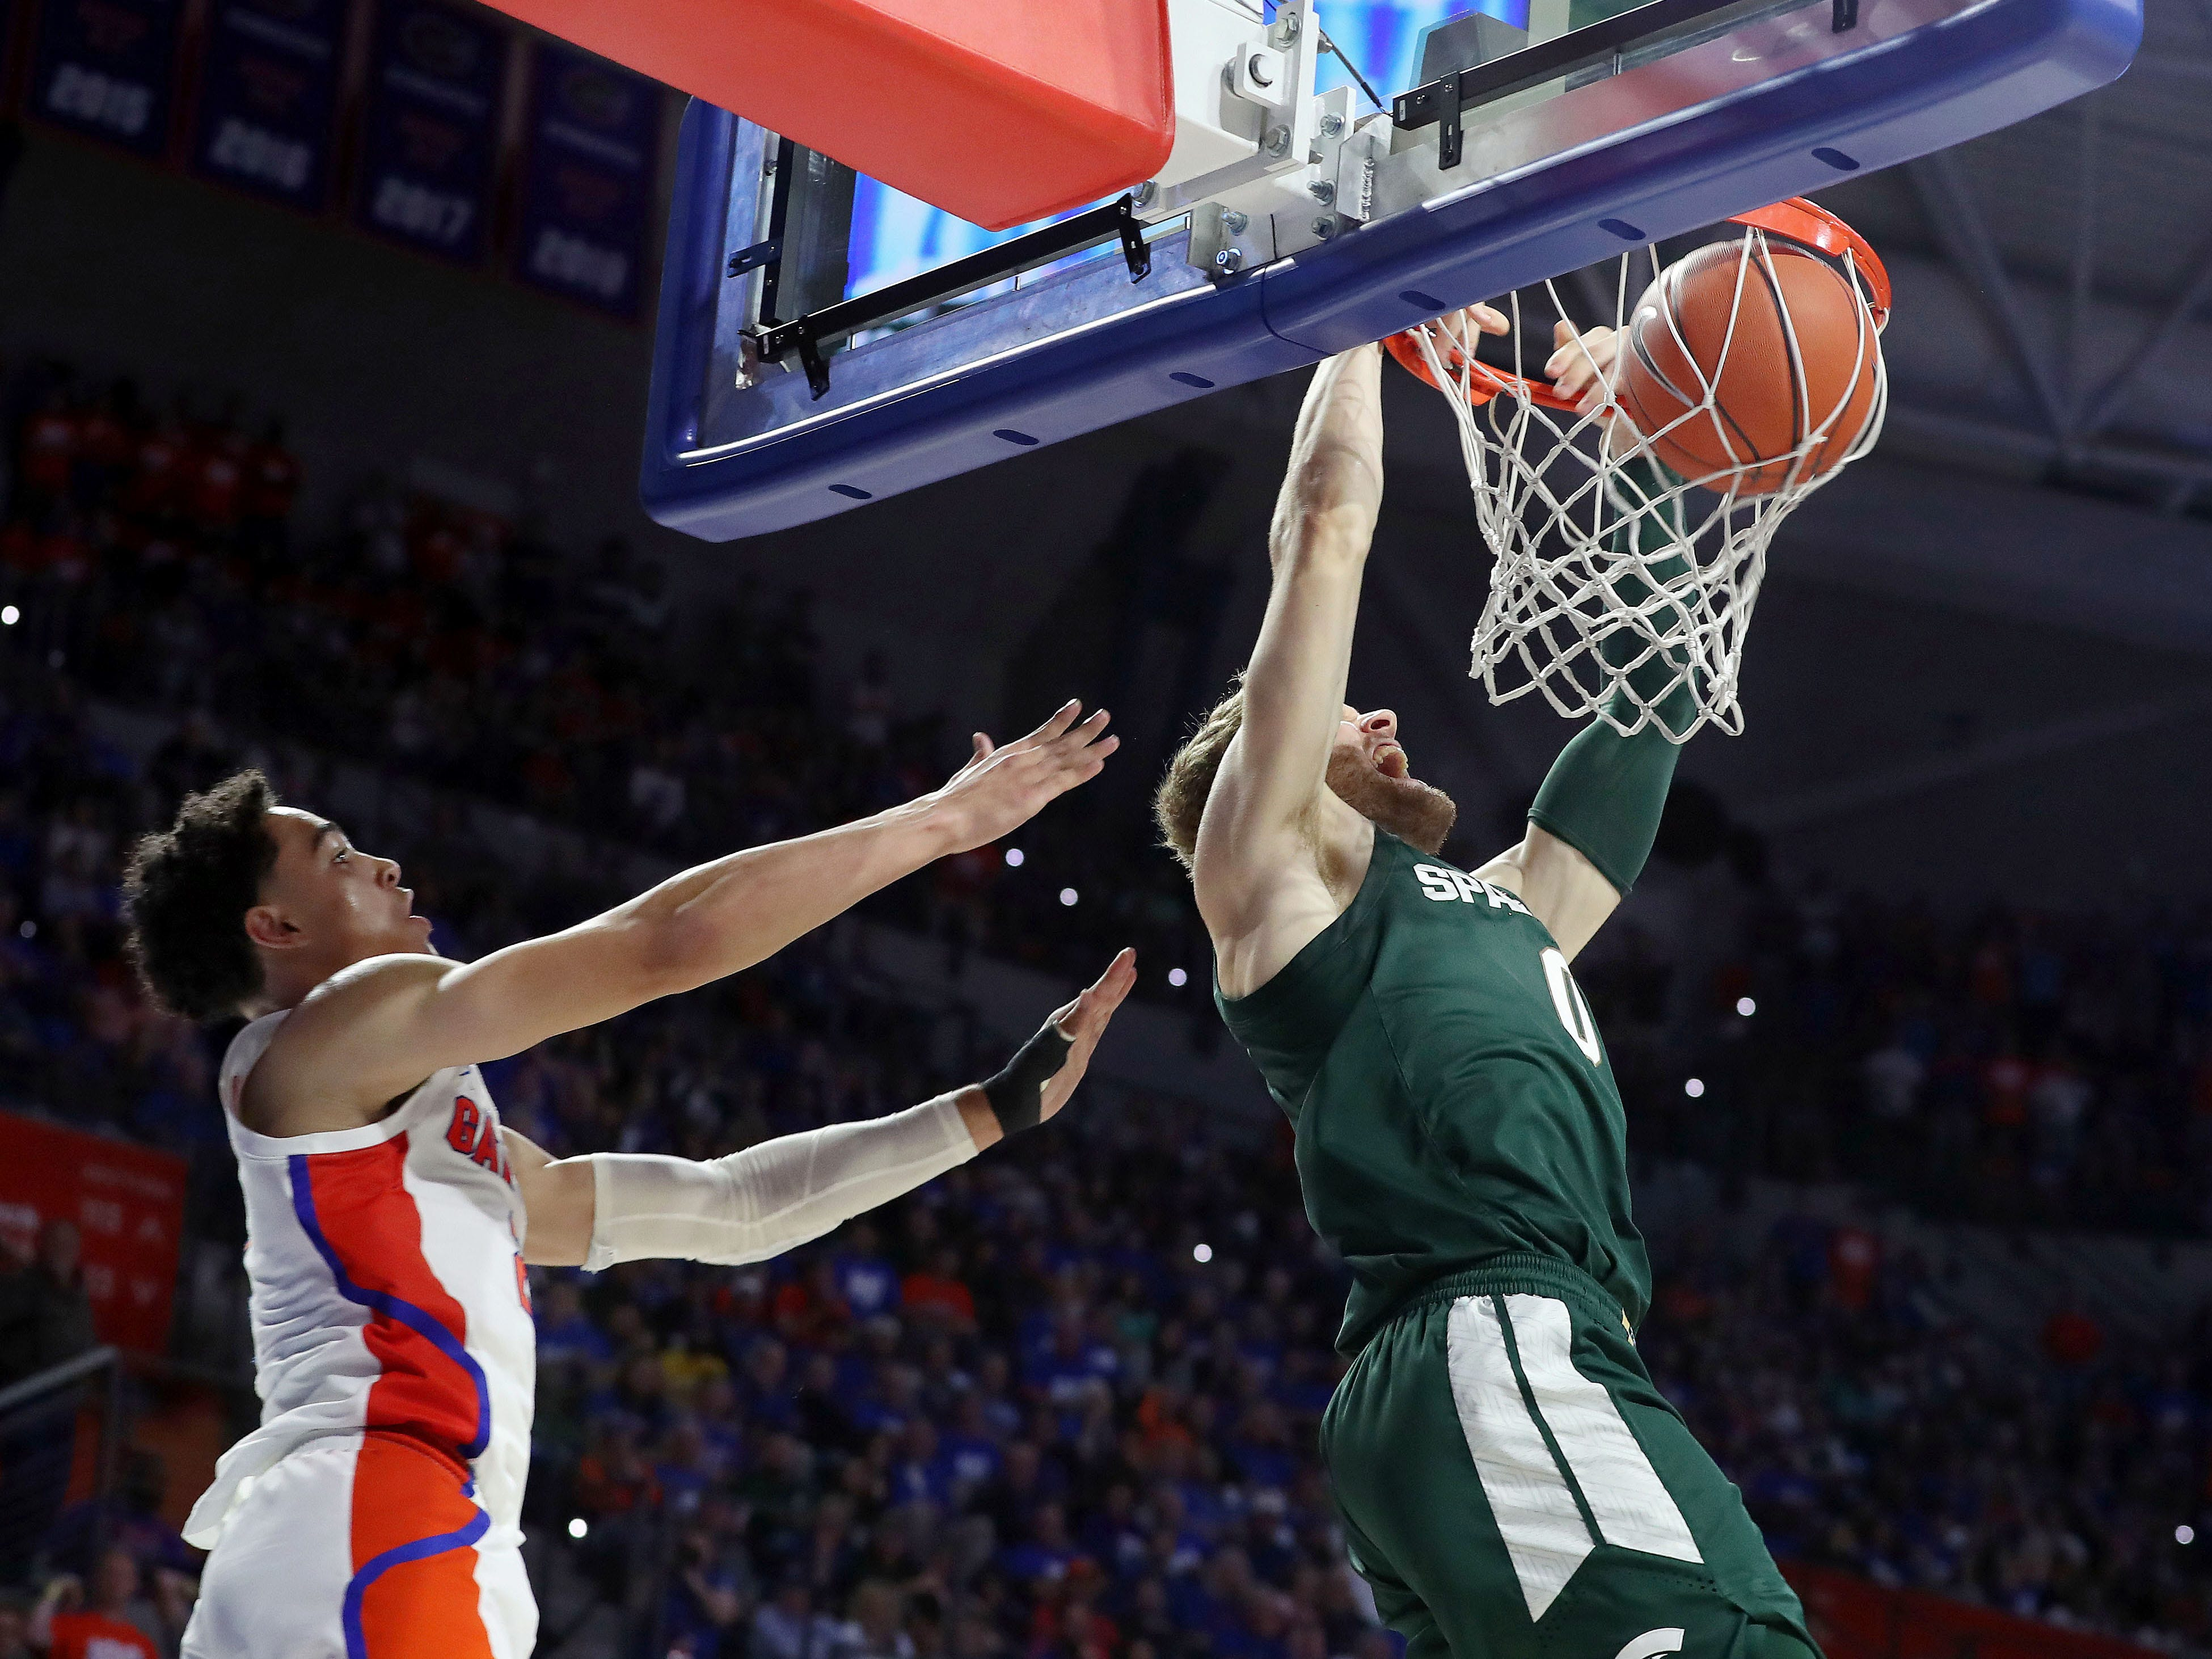 Michigan State Spartans forward Kyle Ahrens (0) dunks over Florida Gators guard Andrew Nembhard (2) during the second half at Exactech Arena.